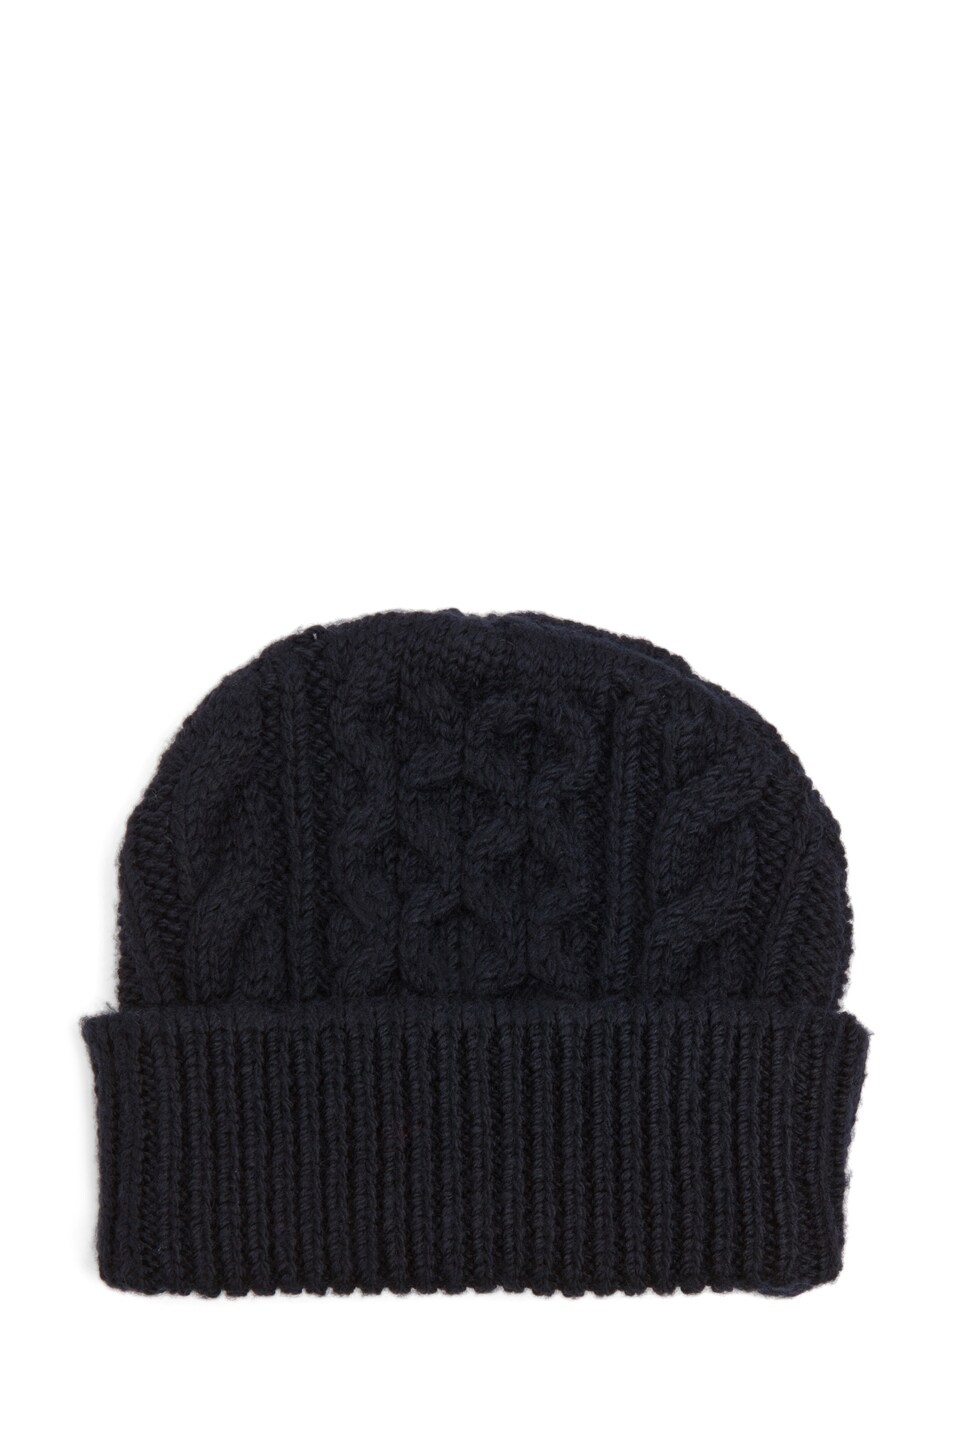 bd10eb7d9c0 Image 1 of Maison Margiela Cable Knit Beanie in Black